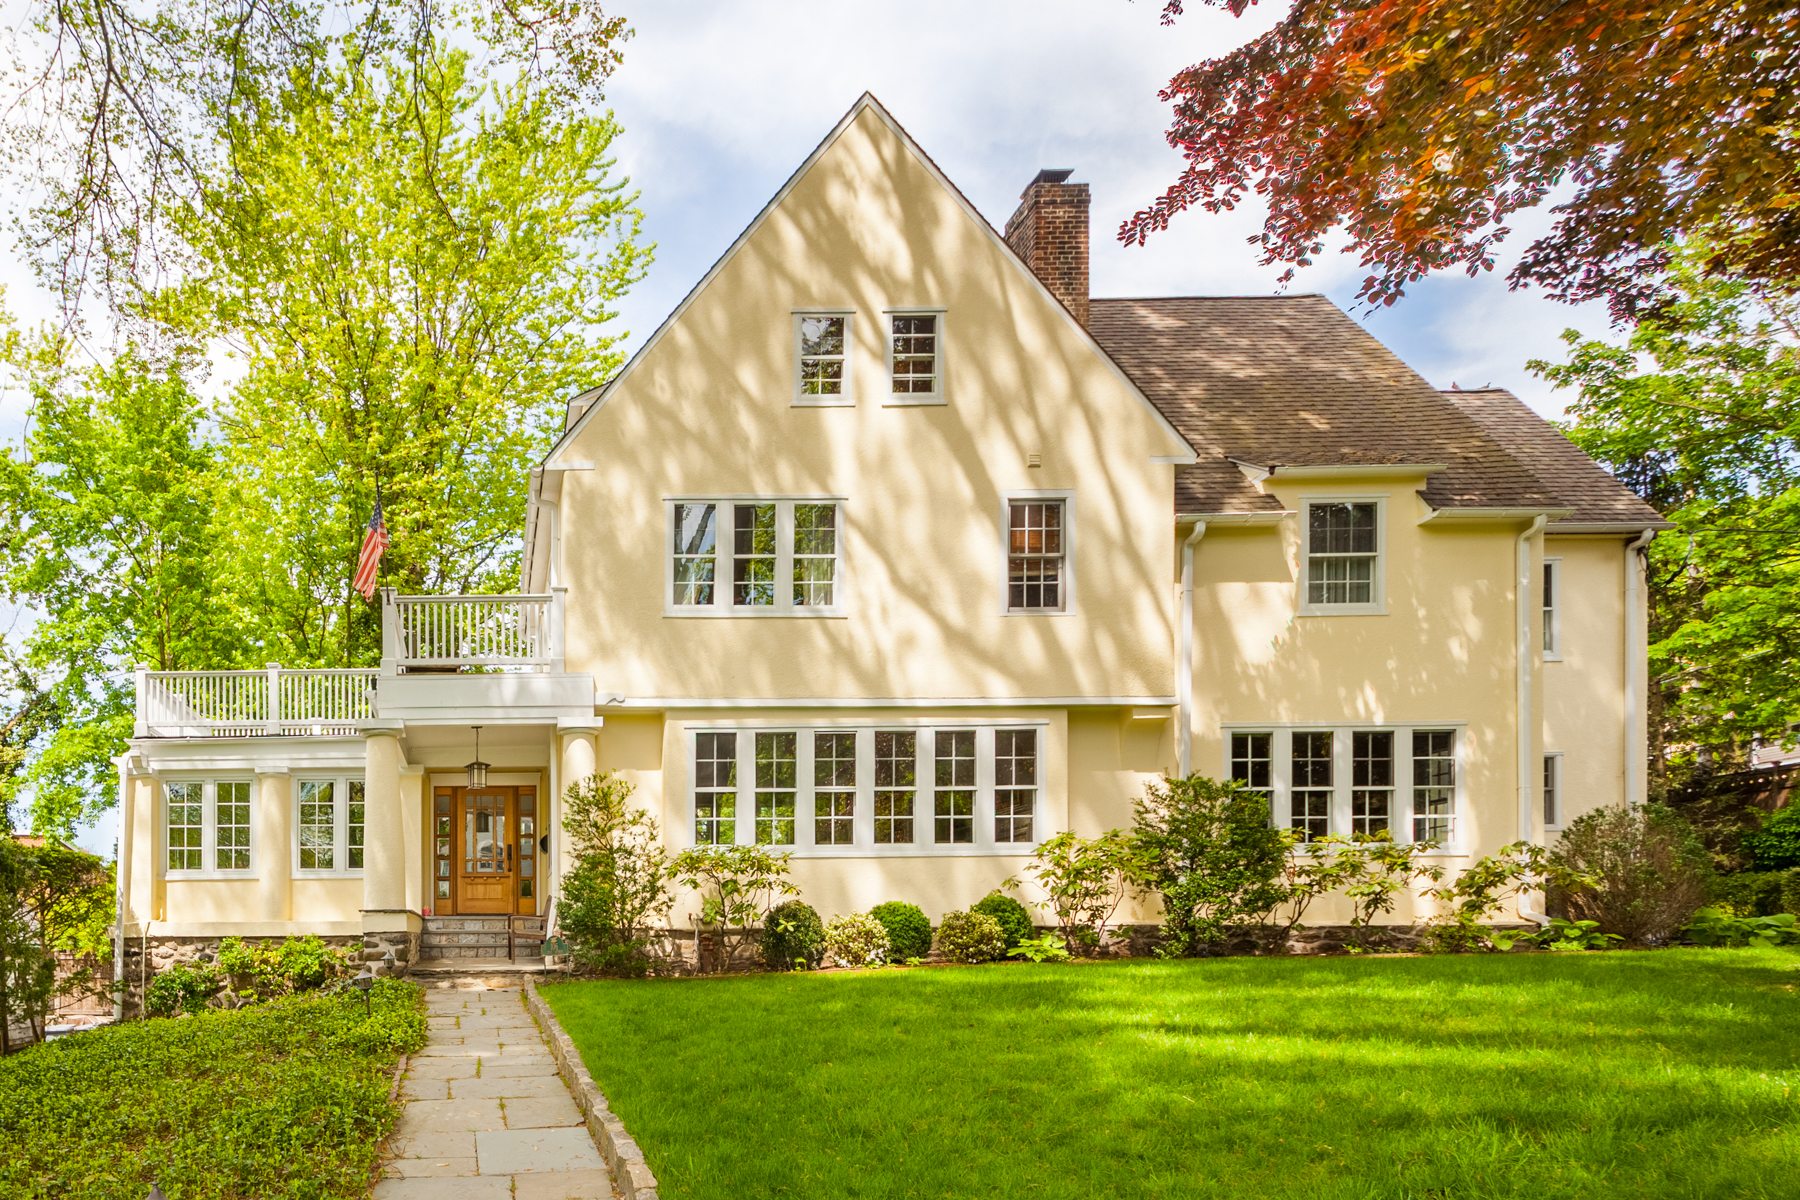 Single Family Homes for Active at Welcome To 106 Park Avenue 106 Park Avenue Bronxville, New York 10708 United States